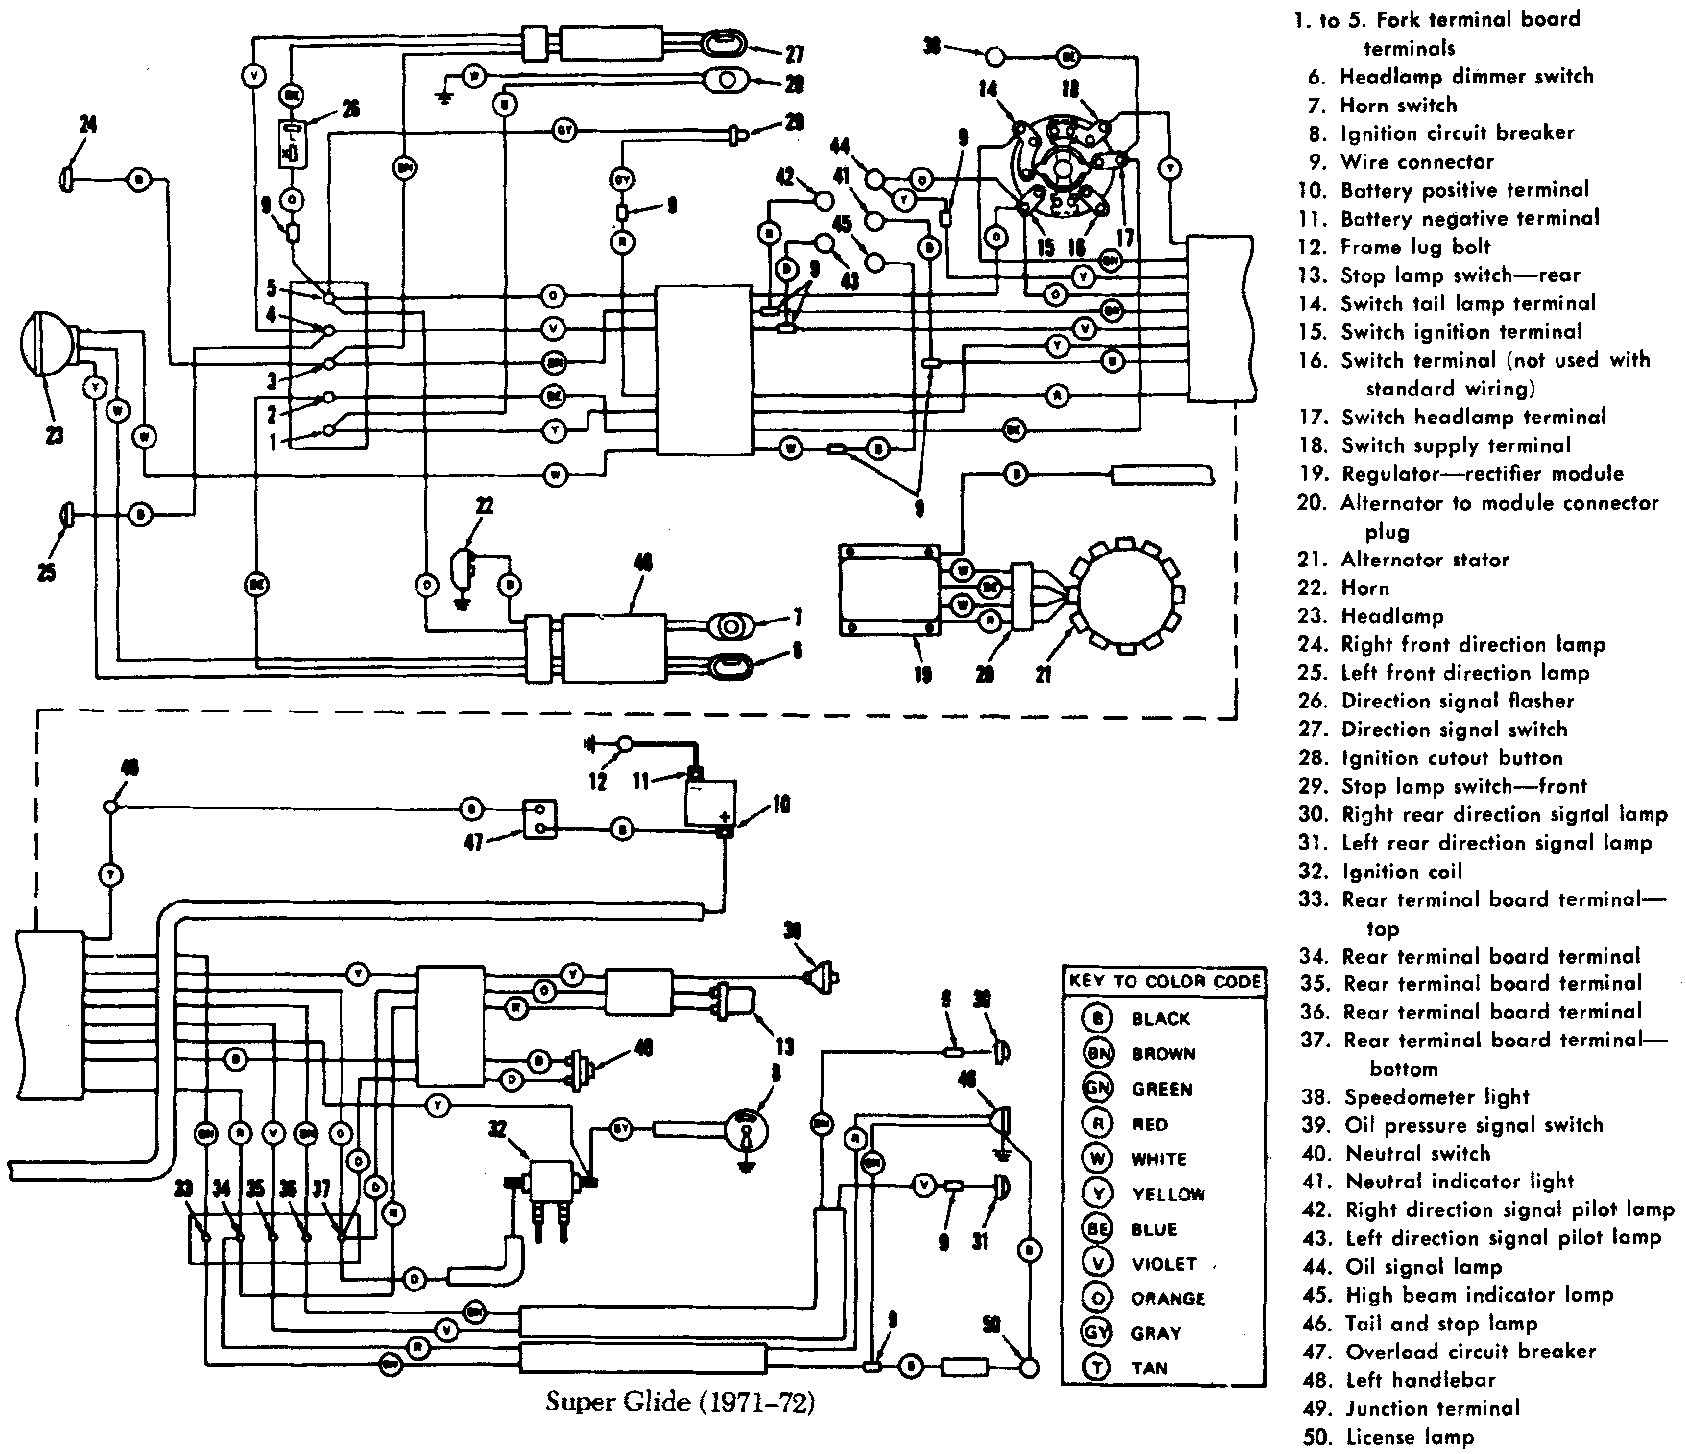 Harley Ignition Switch Wiring Diagram Collection Wiring